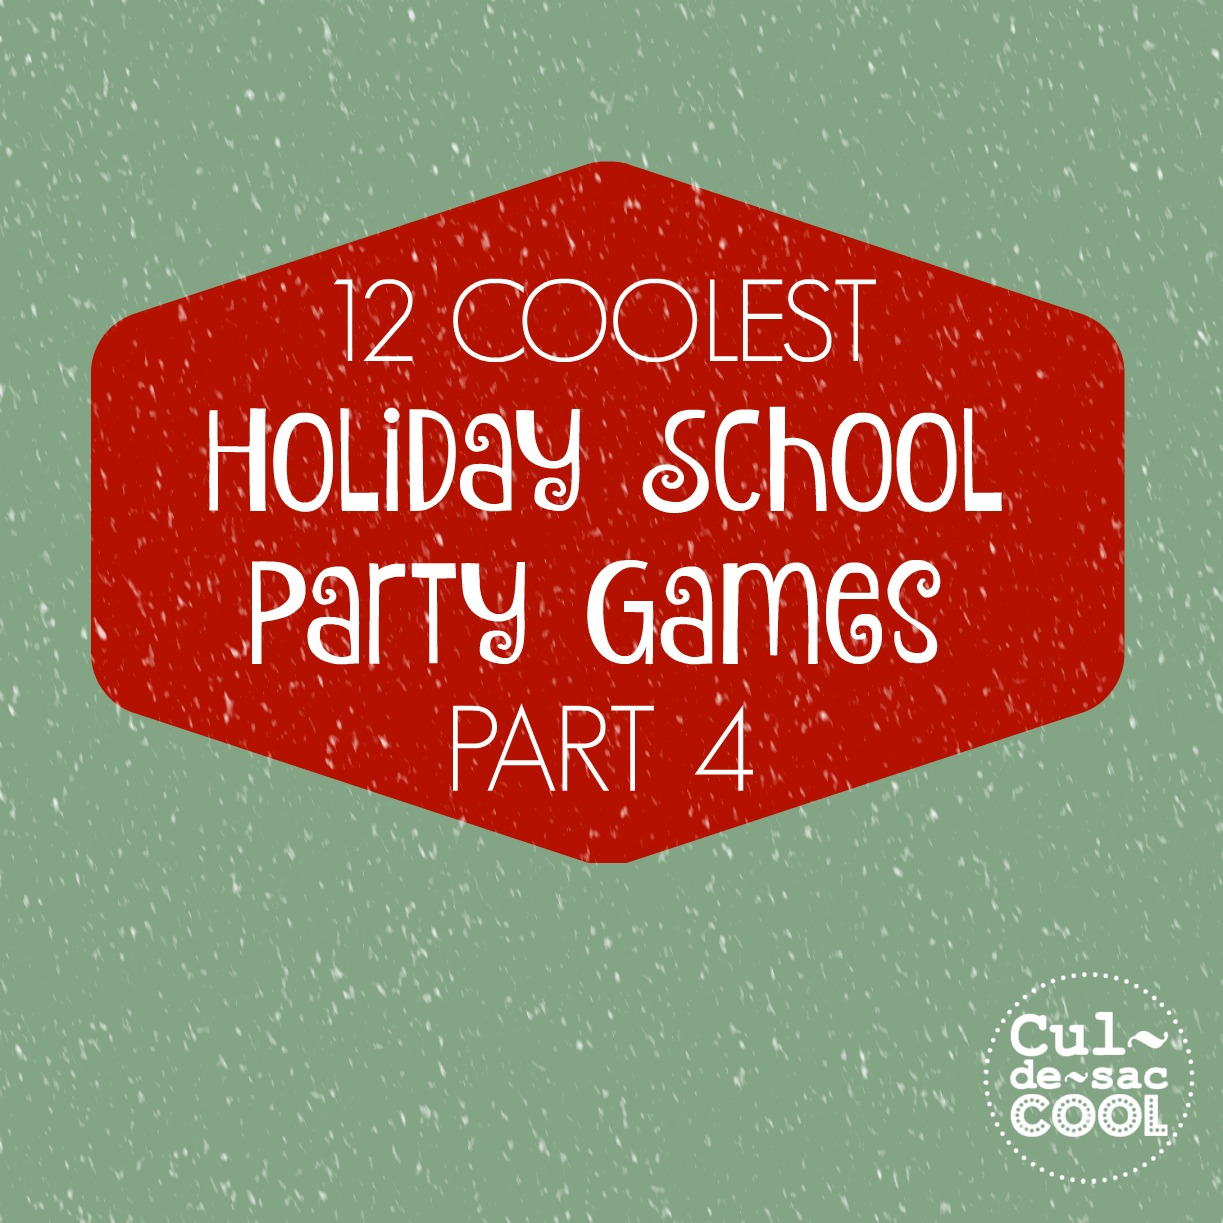 12 Coolest Holiday School Party Games Part 4 cover 2